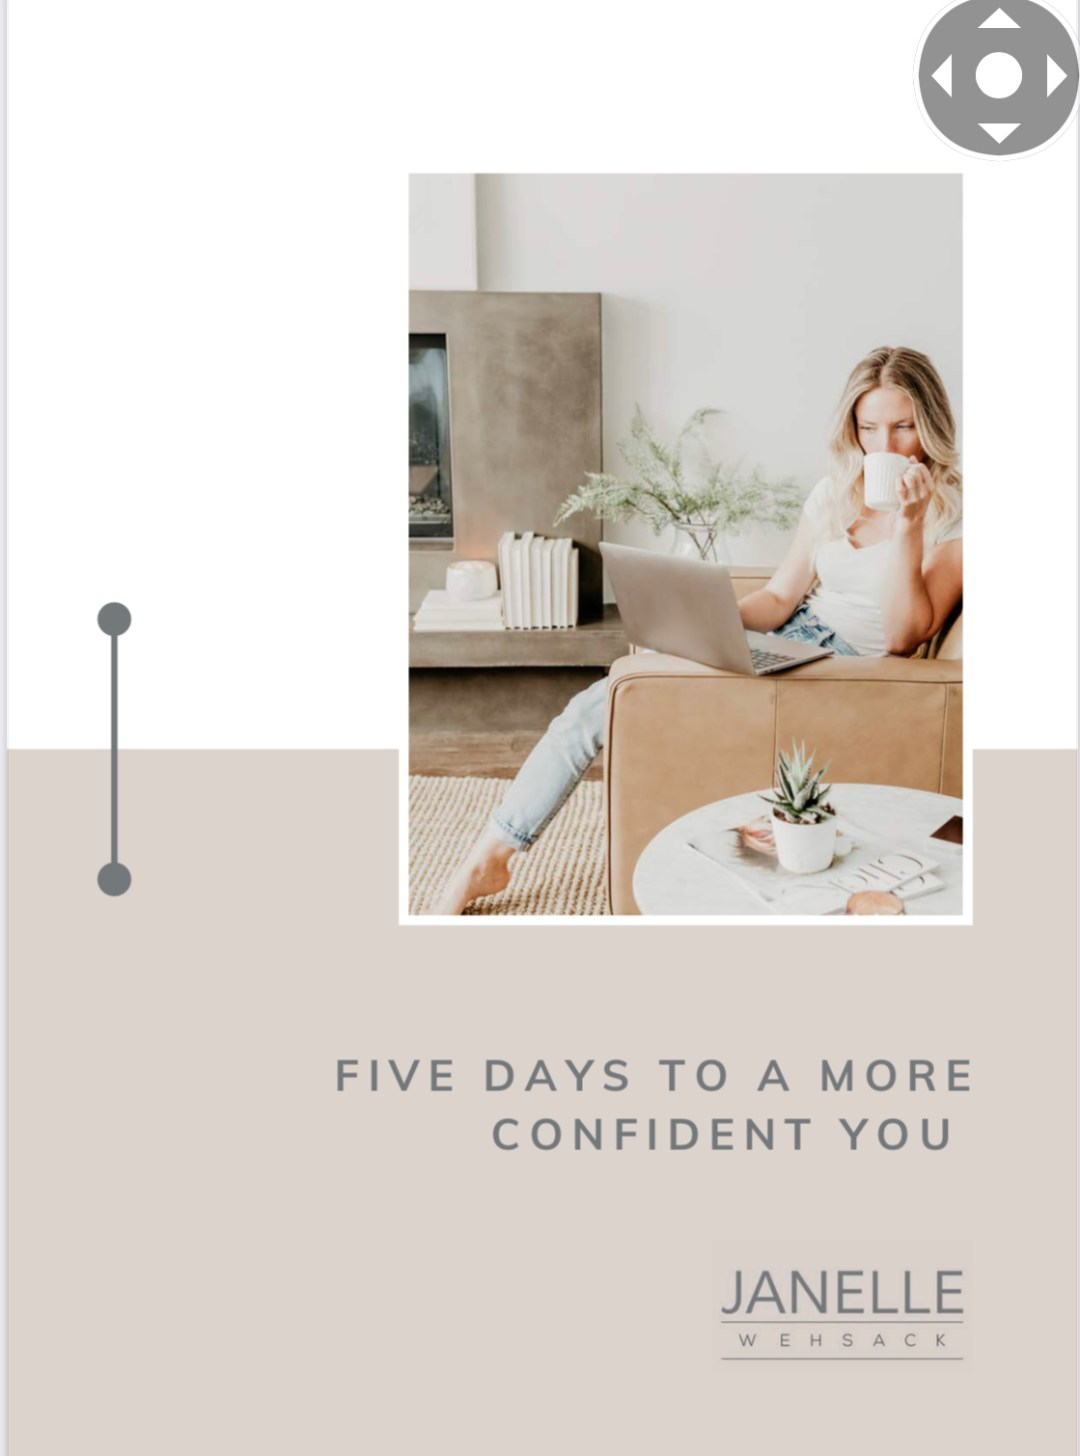 Get your free workbook - Five days to a more confident you